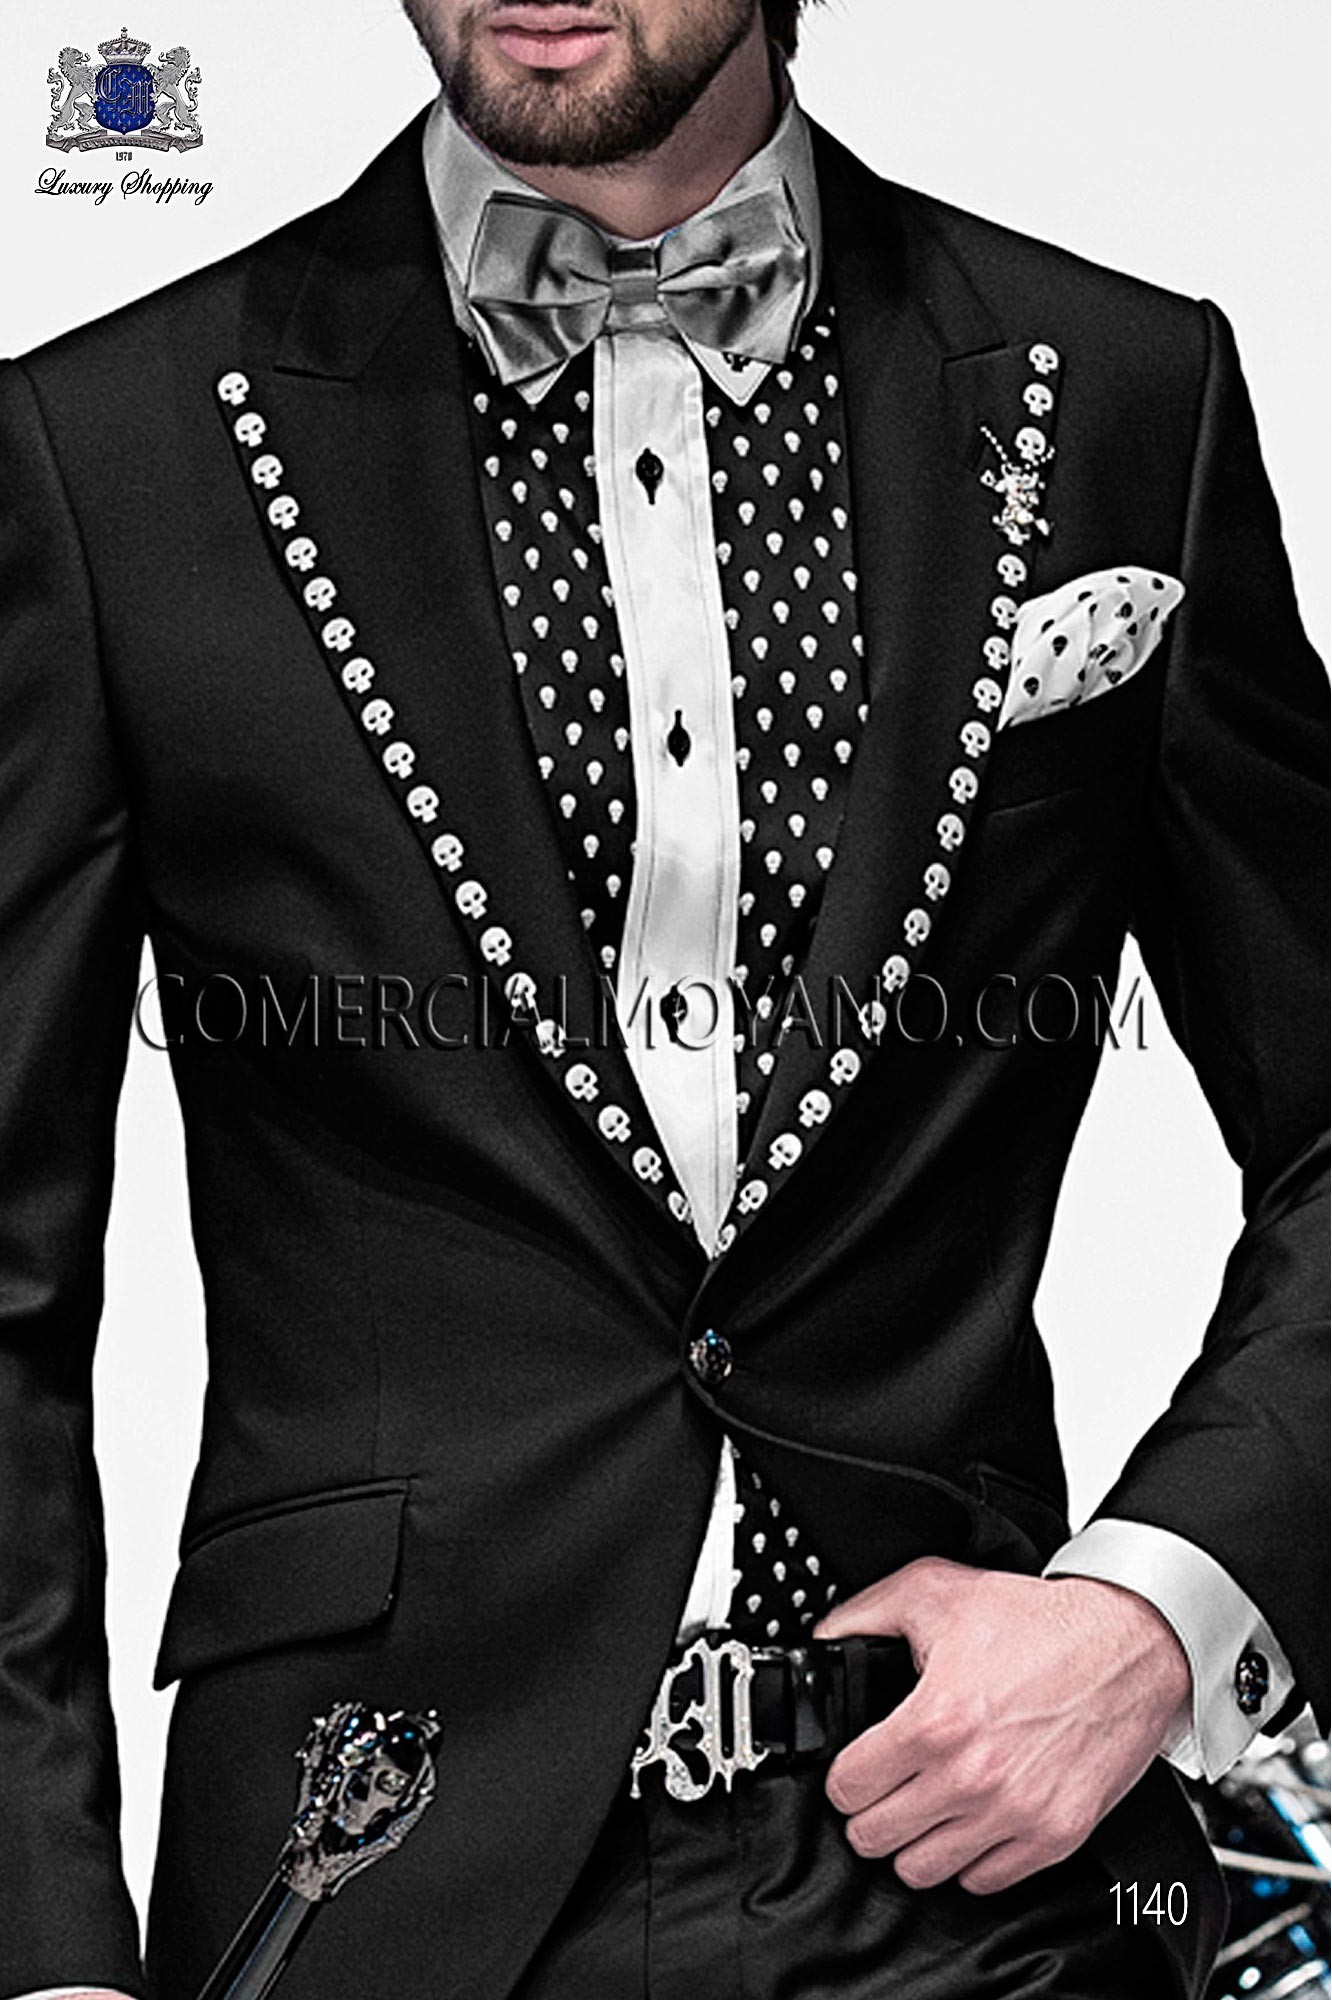 Italian emotion black men wedding suit, model: 1140 Ottavio Nuccio Gala Emotion Collection